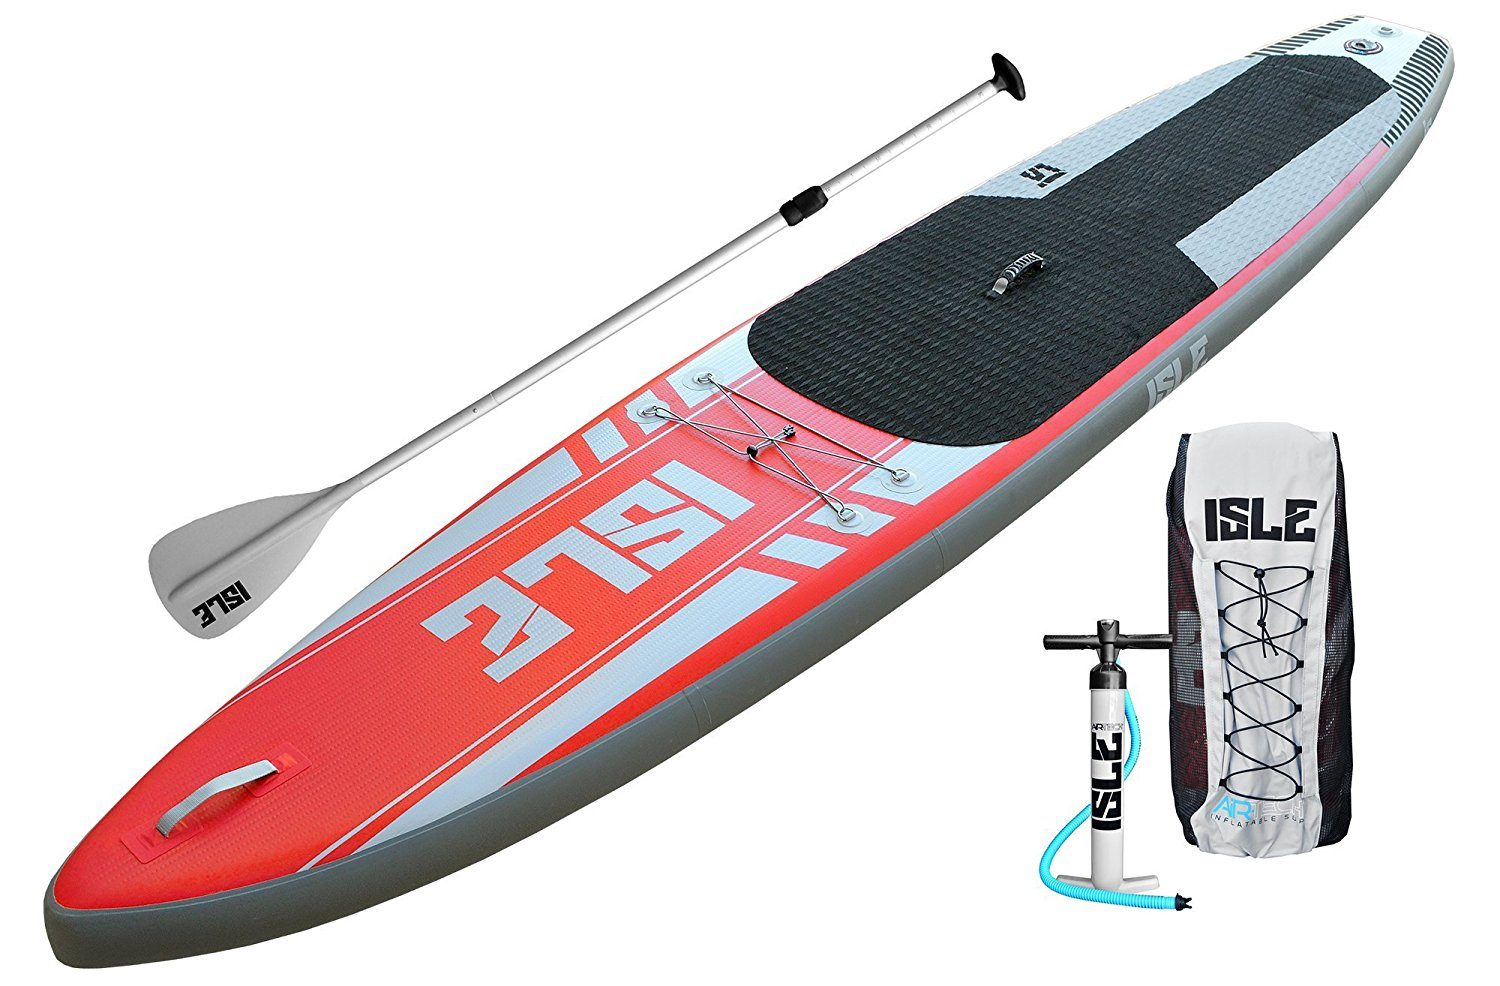 ISLE Airtech 12ft 6in Touring Inflatable Paddle Board